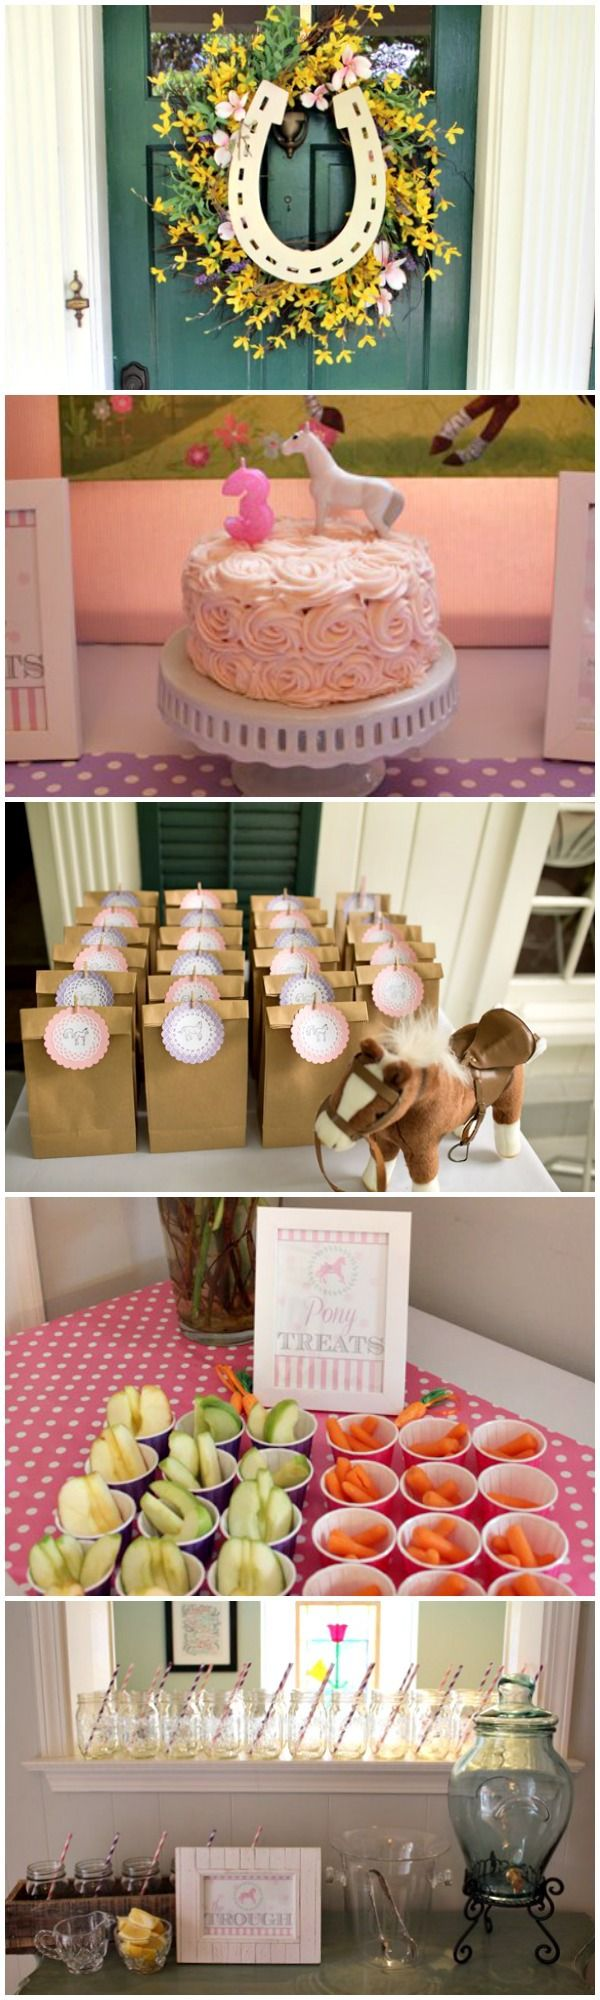 Darling budget-friendly Horse Party ideas